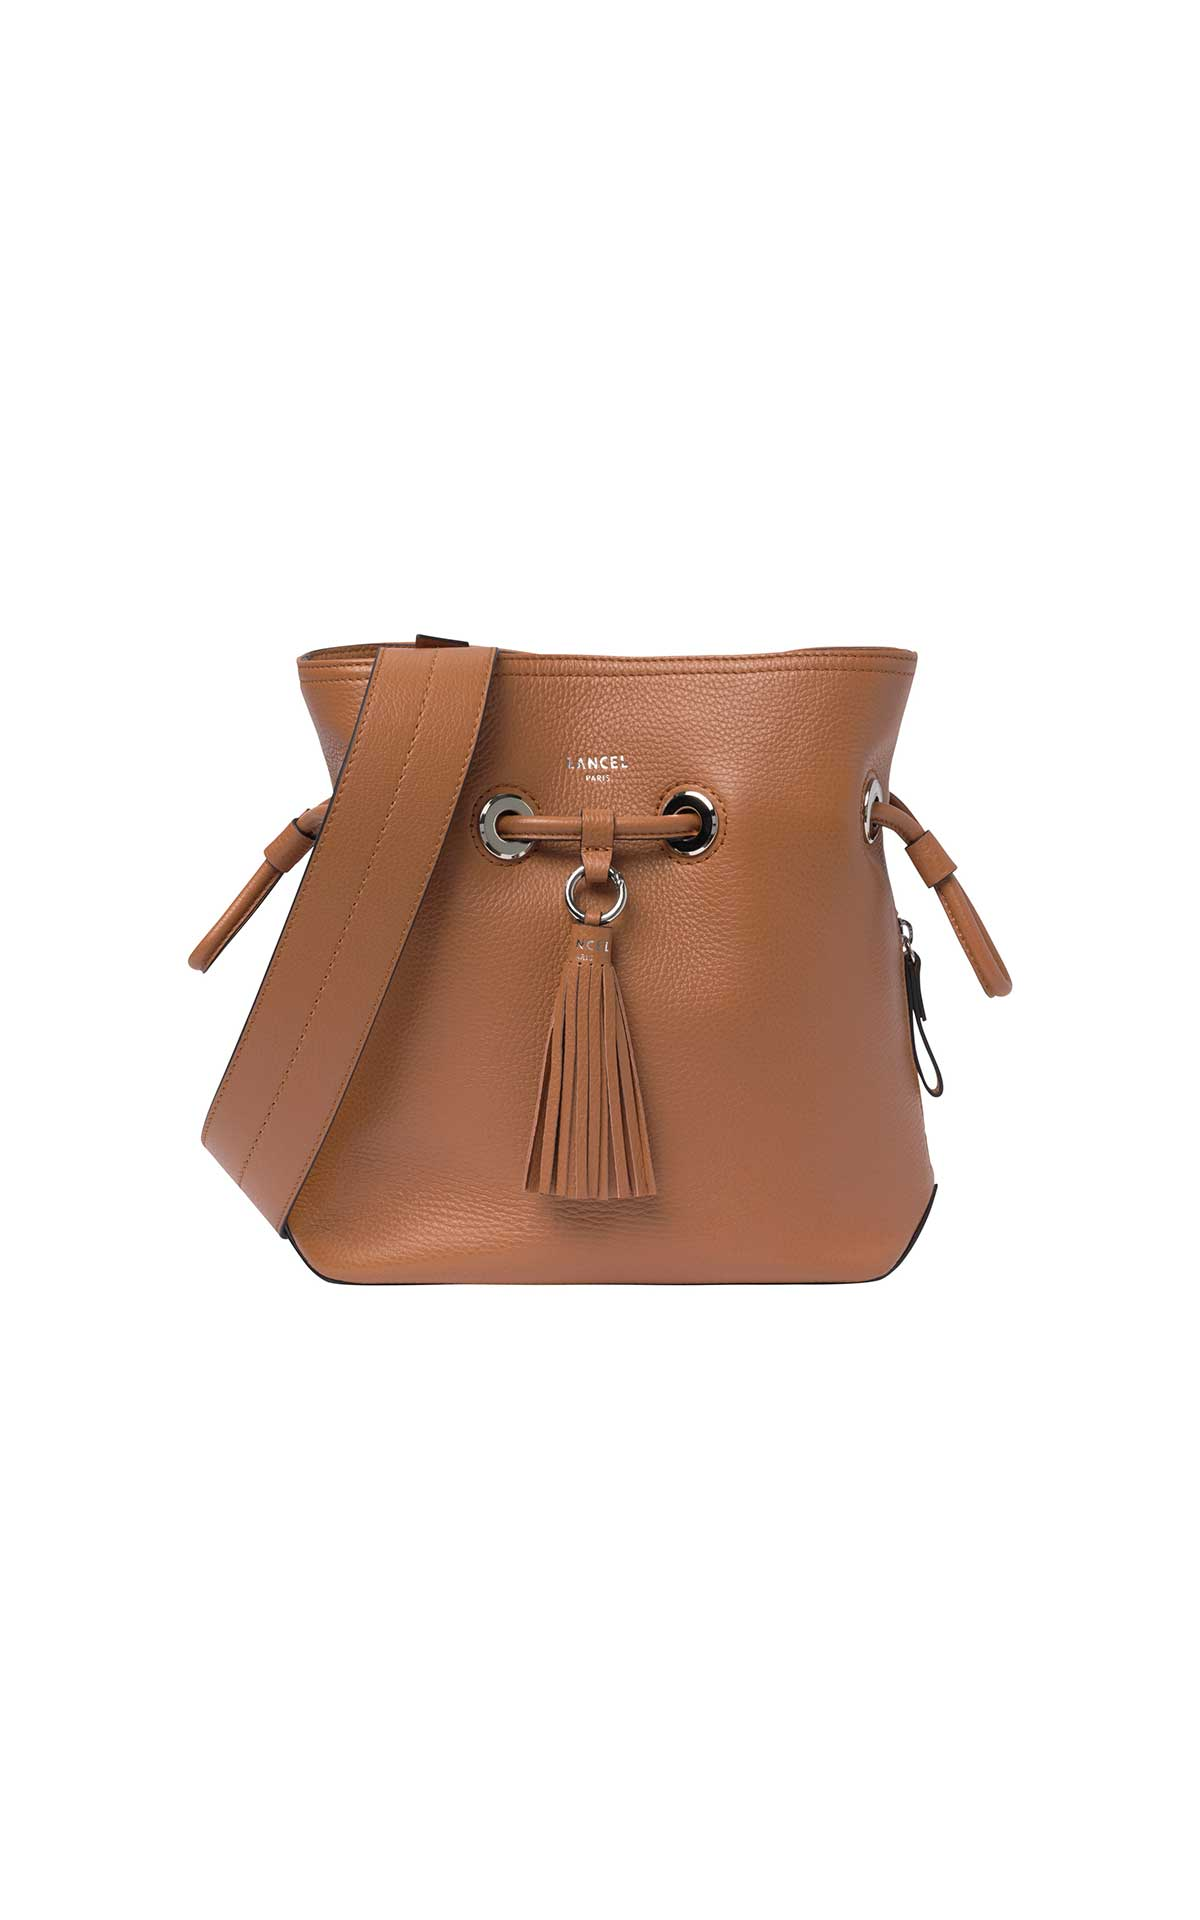 Camel shoulder bag woman Lancel